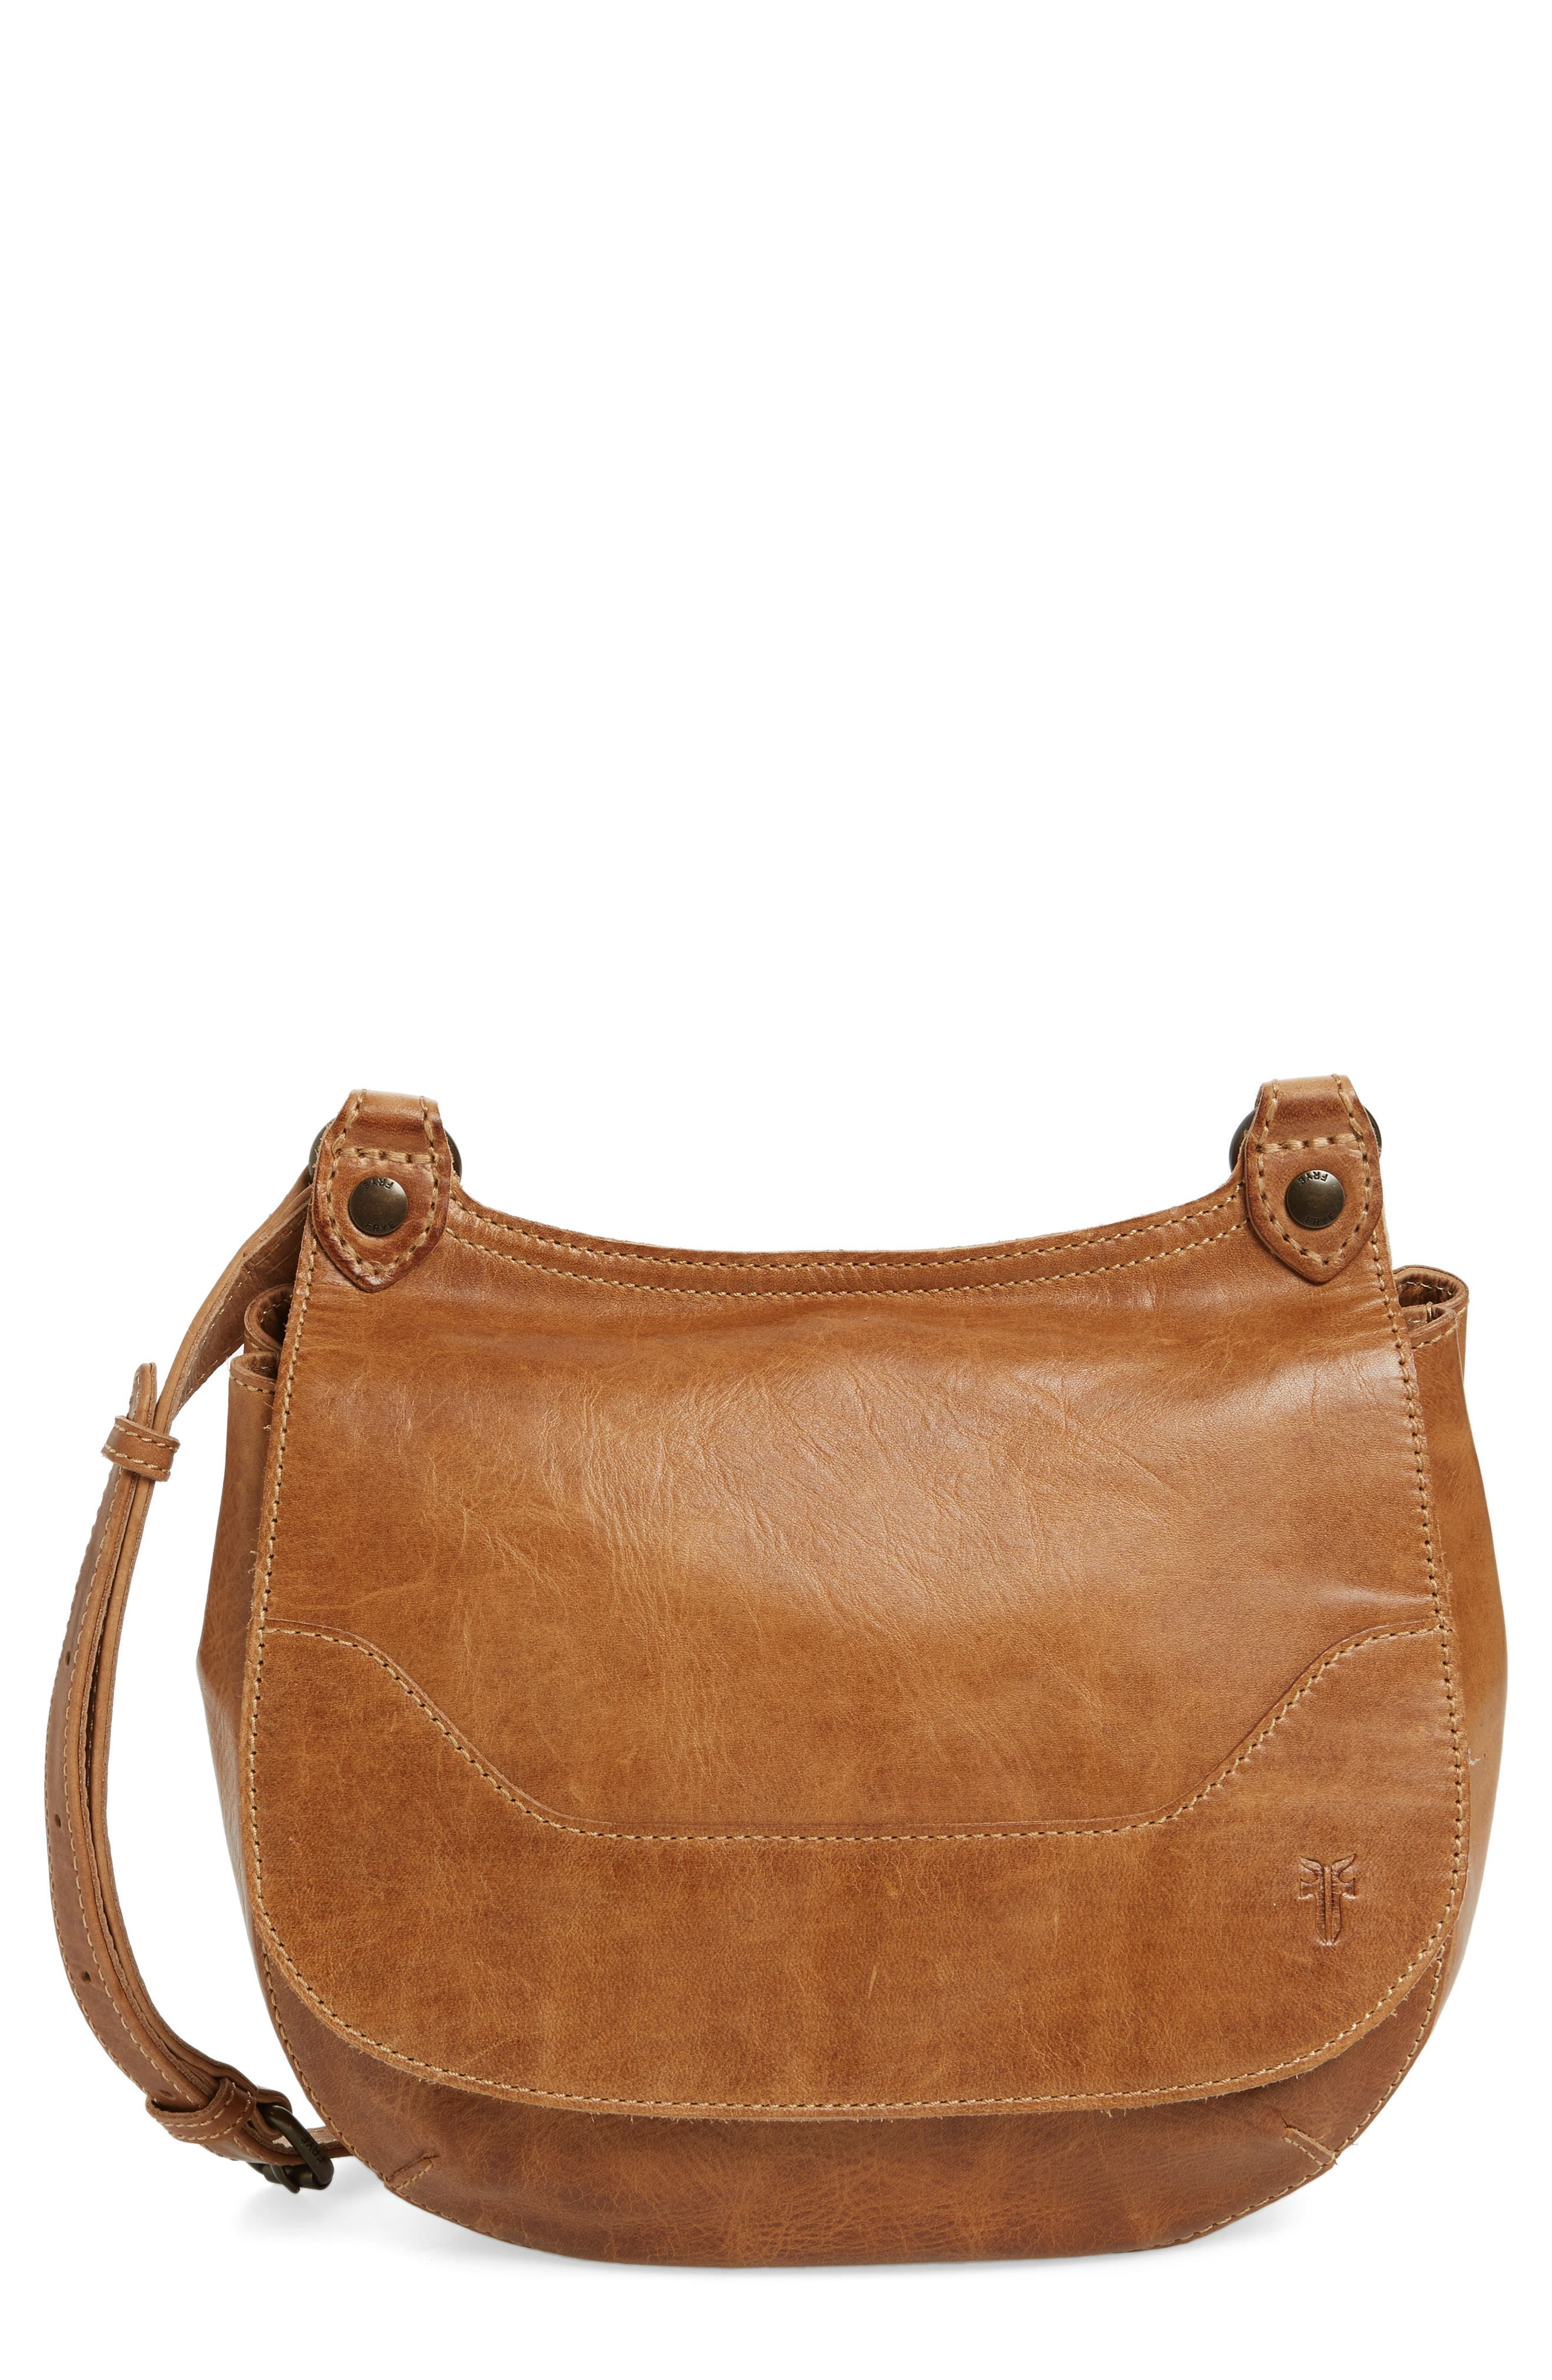 FRYE 'Melissa' Leather Crossbody Bag